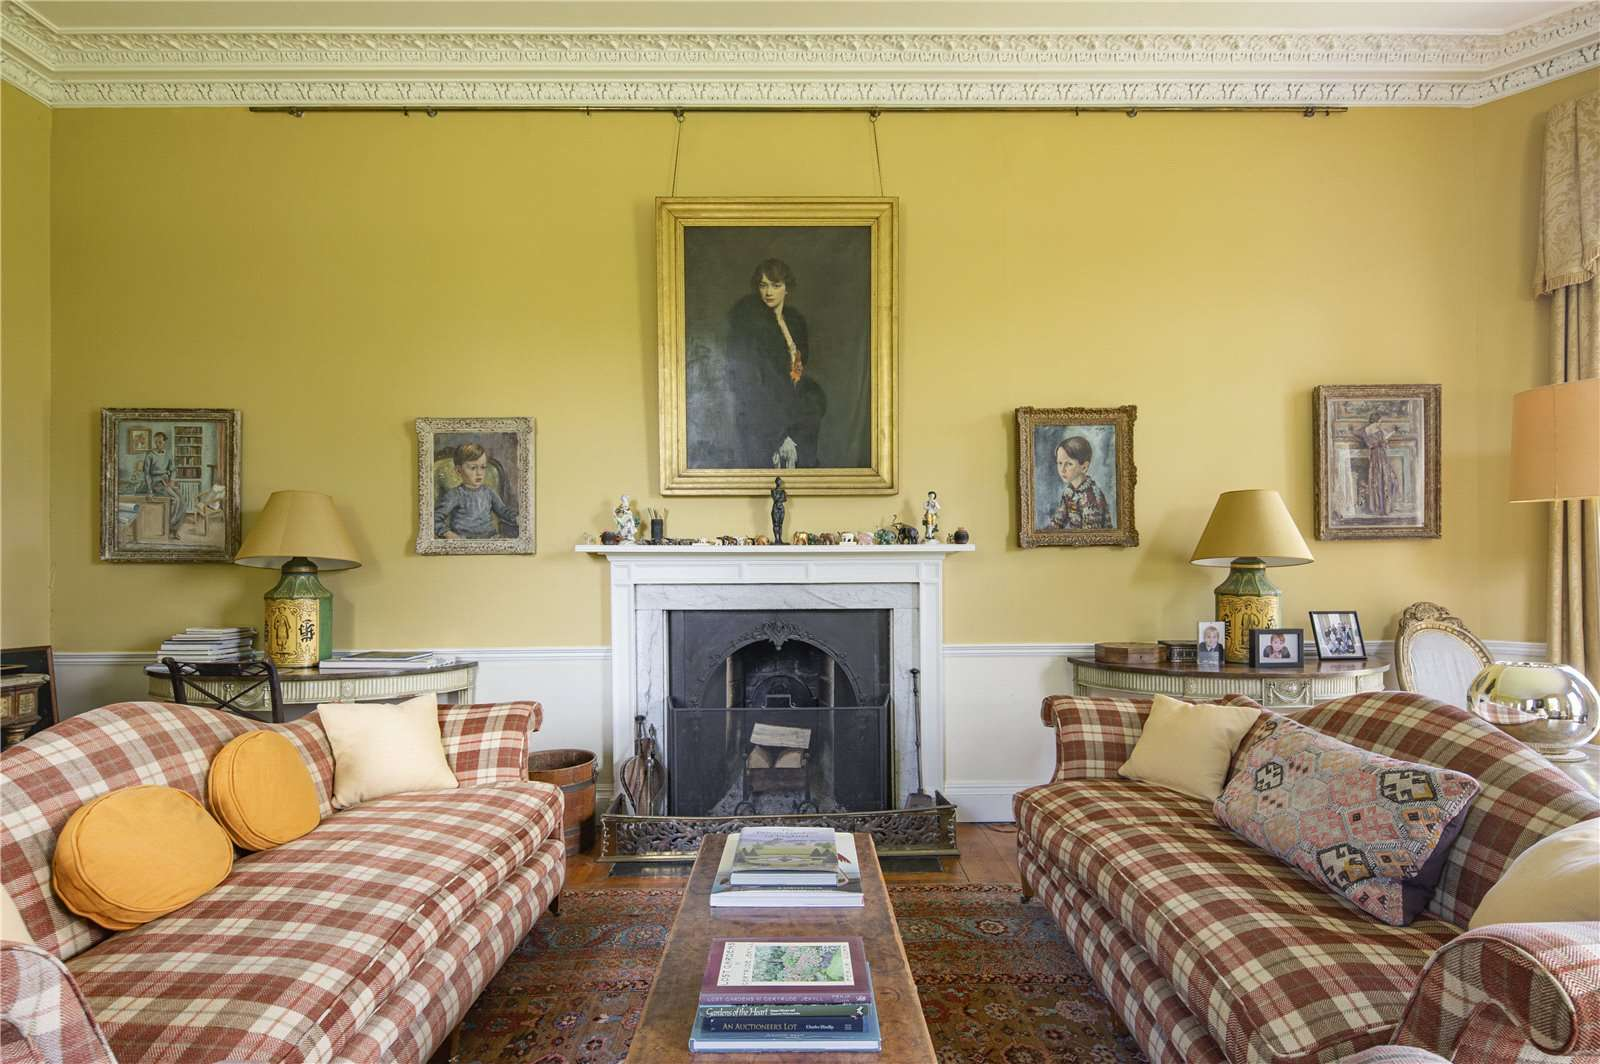 Beauforest House, Wallingford - Image Gallery 07 - Drawing Room